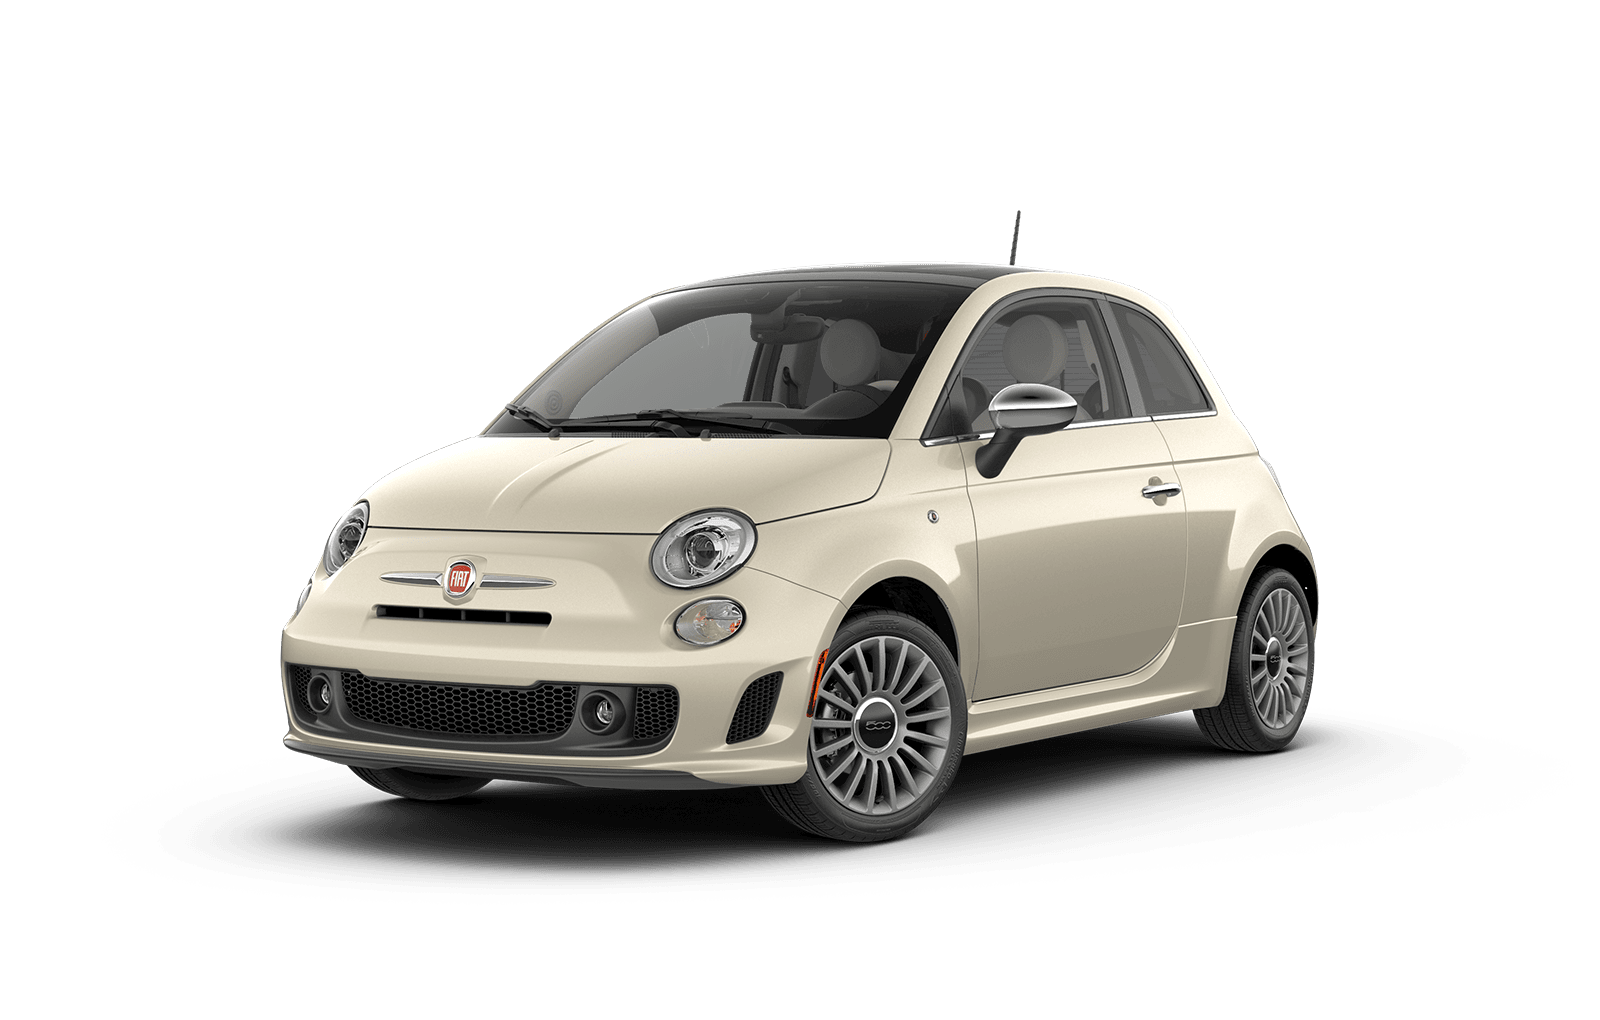 2018 FIAT 500 Full View in Off White with Wheels